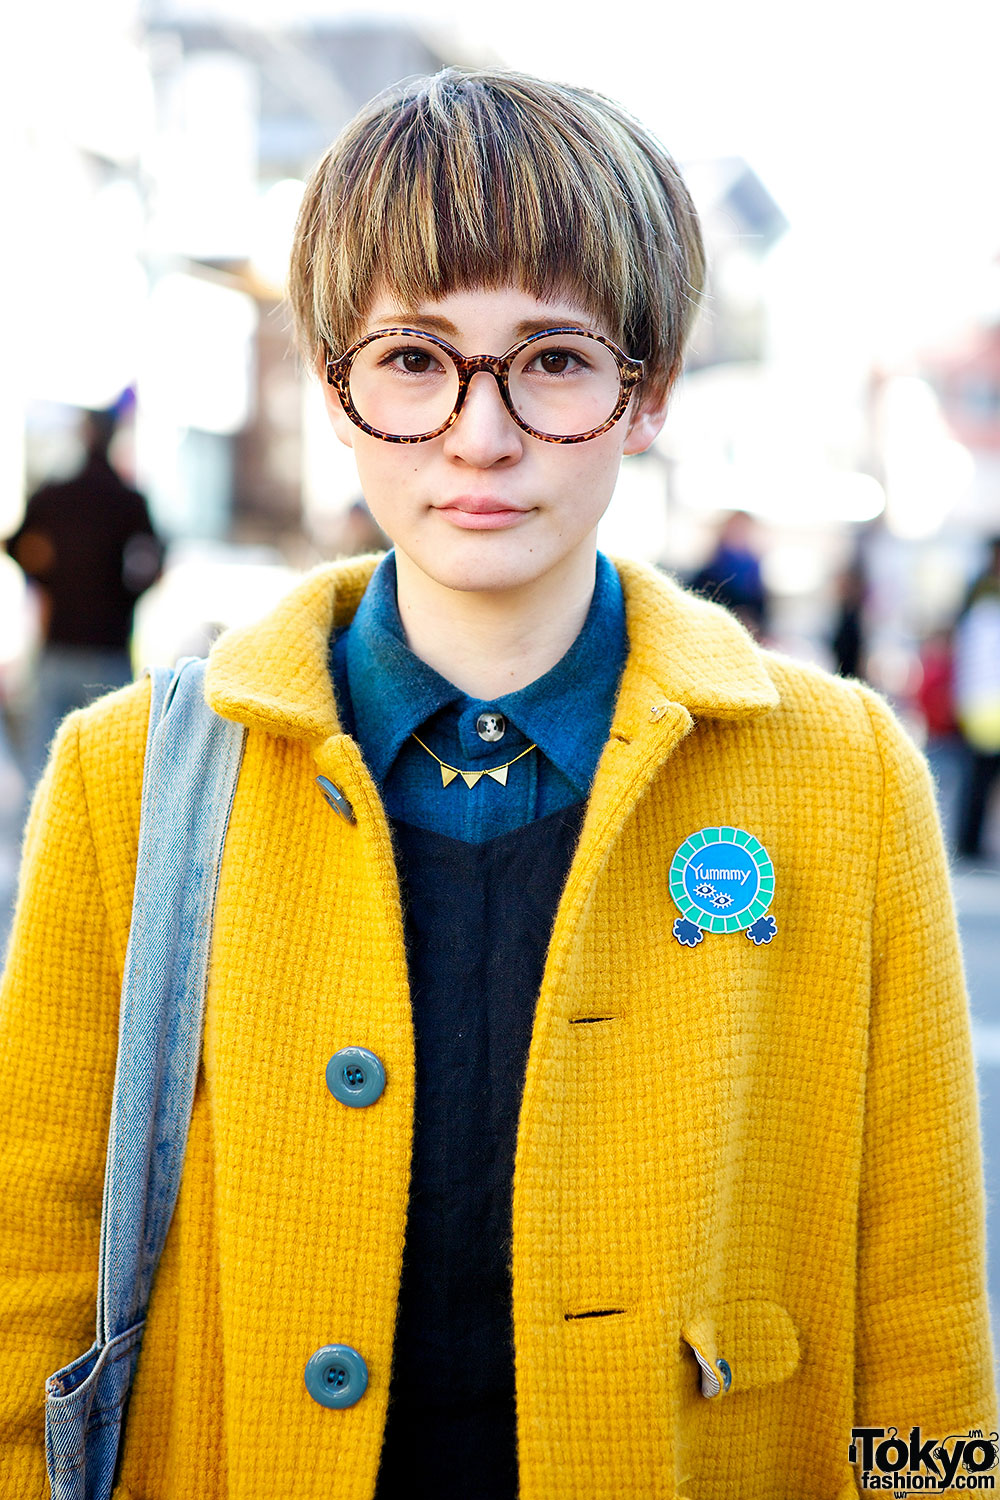 Cute Pixie Cut Round Glasses Amp Didizizi Mustard Coat In